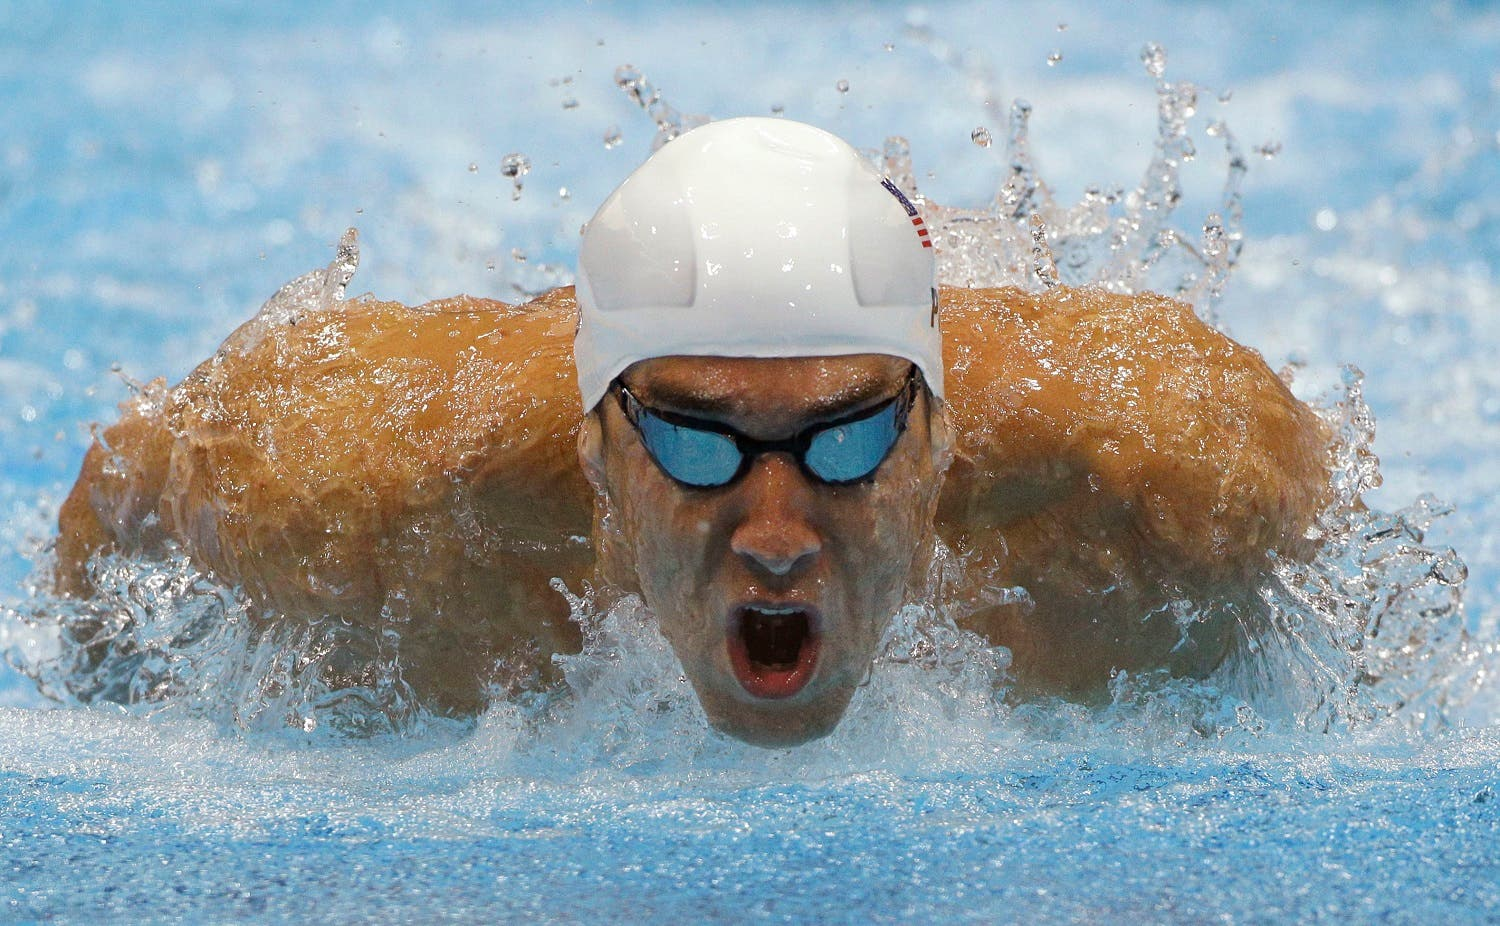 Michael Phelps competes in a heat of the men's 400-meter individual medley at the 2012 Summer Olympics in London. AP